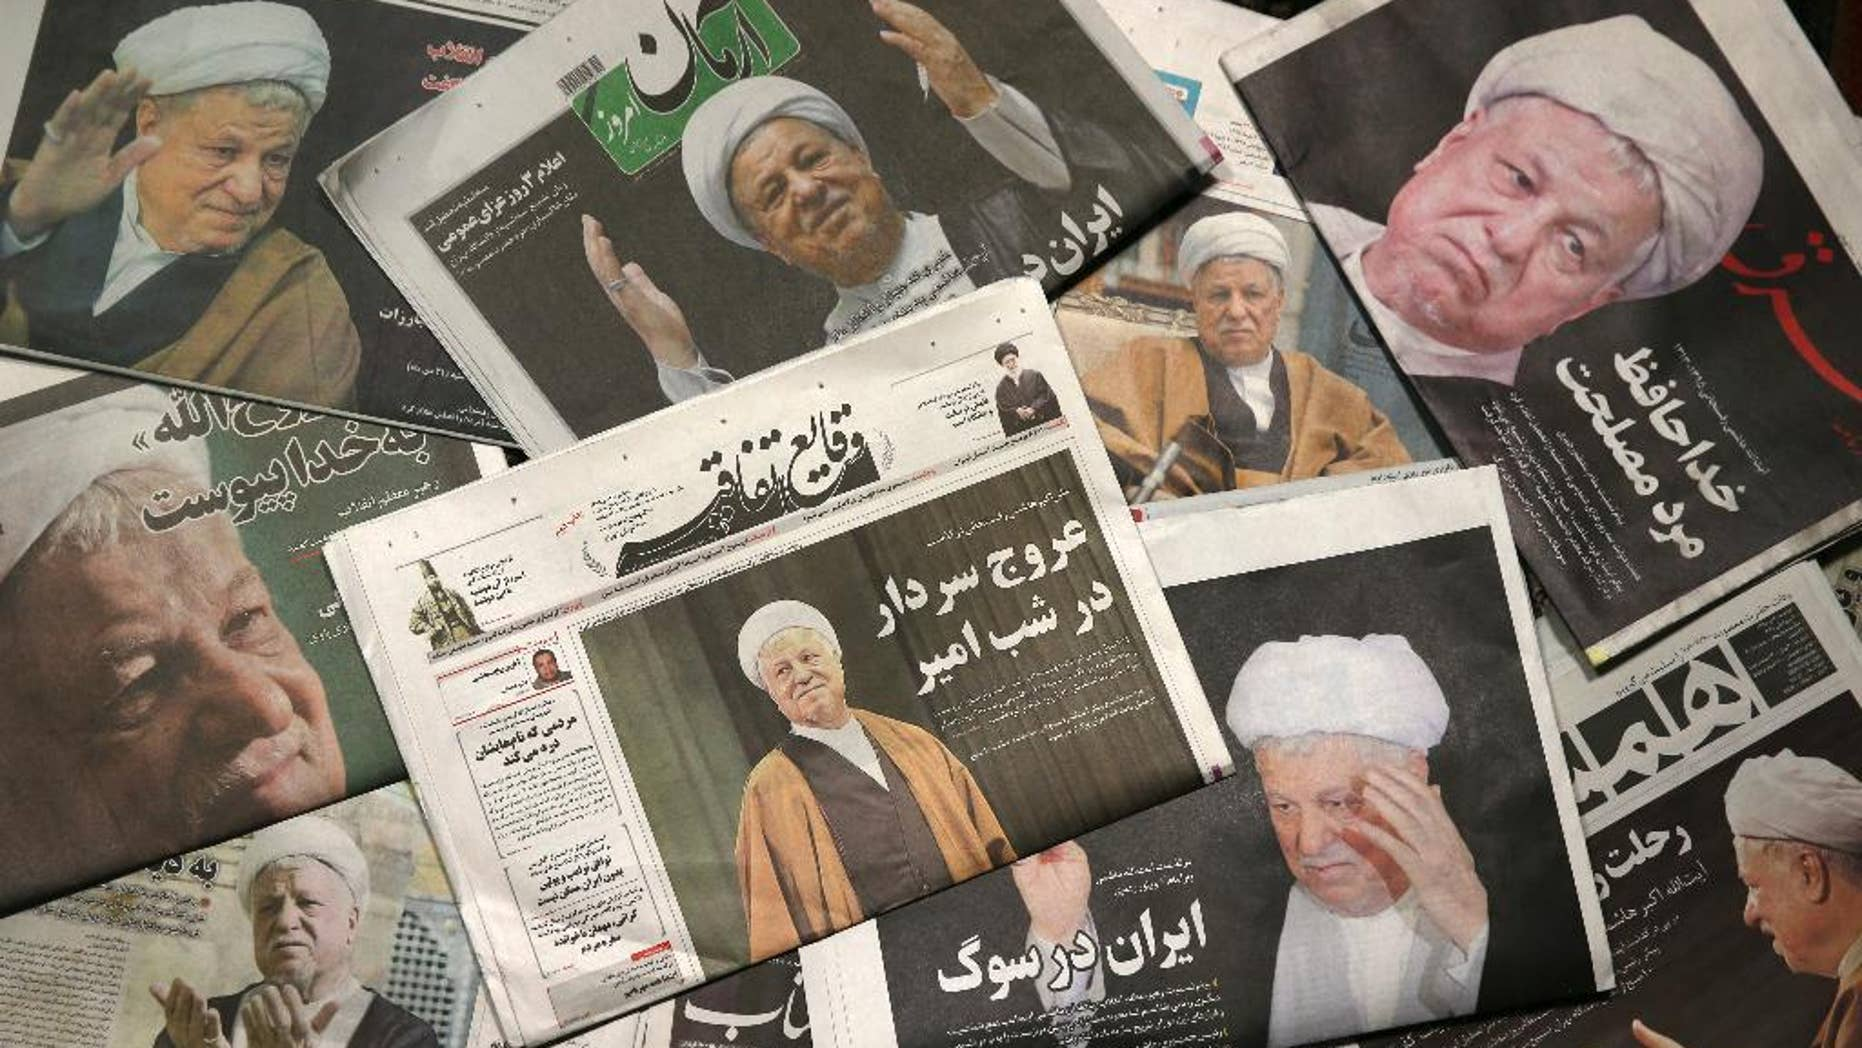 Front pages of the Monday, Jan. 9, 2017, edition of Iranian newspapers, published with pictures of former President Akbar Hashemi Rafsanjani, who died on Sunday after suffering a heart attack. Newspapers in Iran published front-page photographs of Rafsanjani, while state television aired archival clips of his comments and speeches. Mourners from all walks of life in Iran - from the country's president to passers-by on the street - paid their respects to him. The country is observing three days of mourning. (AP Photo/Vahid Salemi)